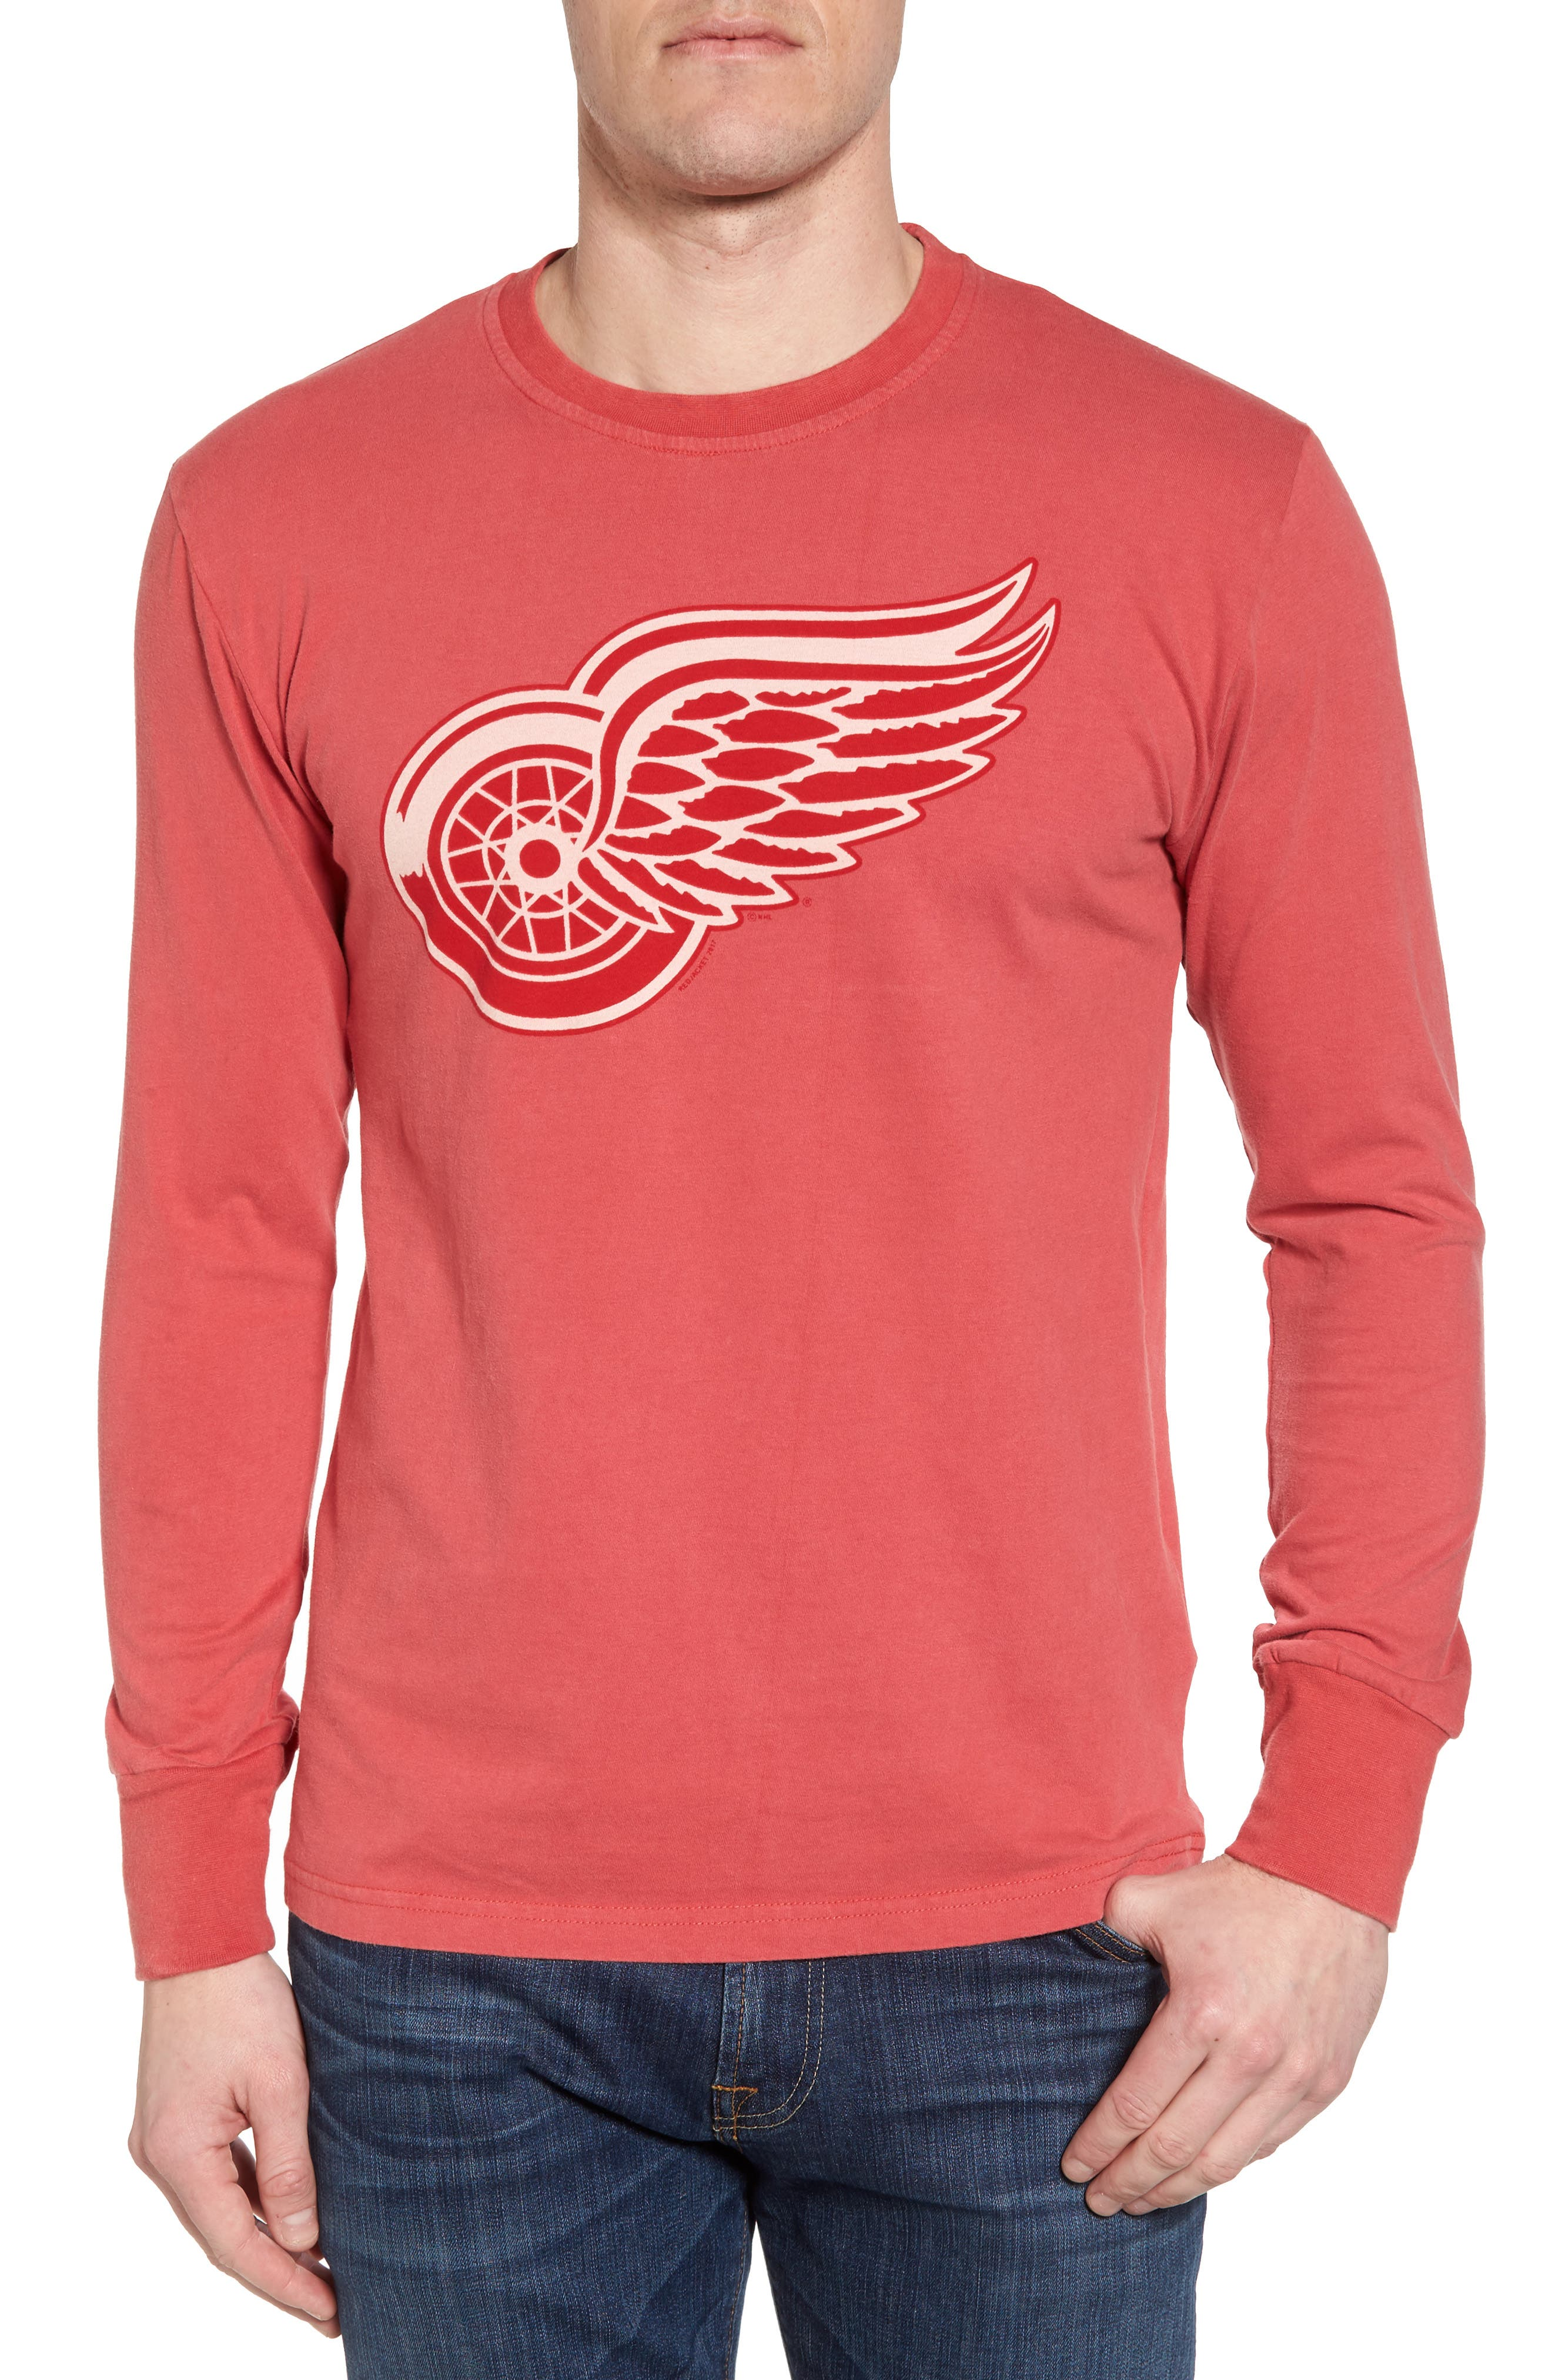 Gresham Red Wings T-Shirt,                         Main,                         color, Red